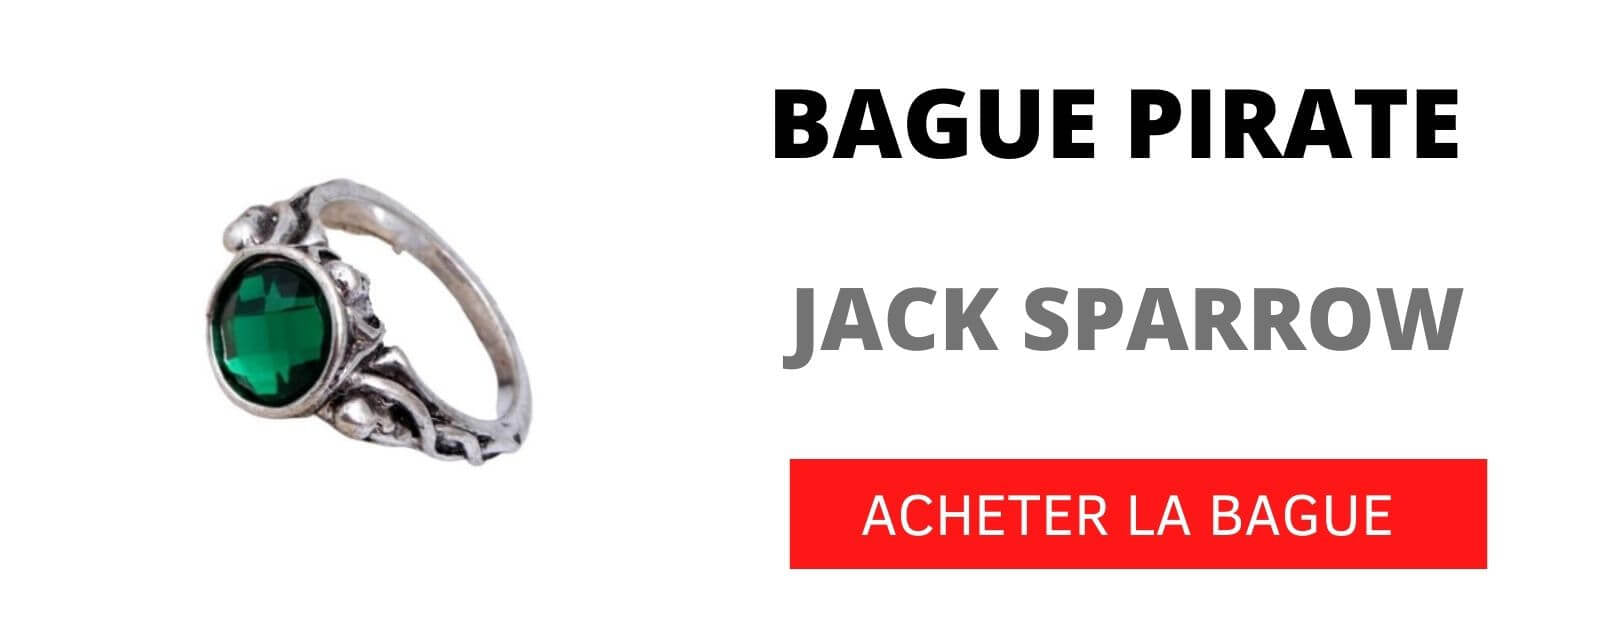 bague pirate jack sparrow